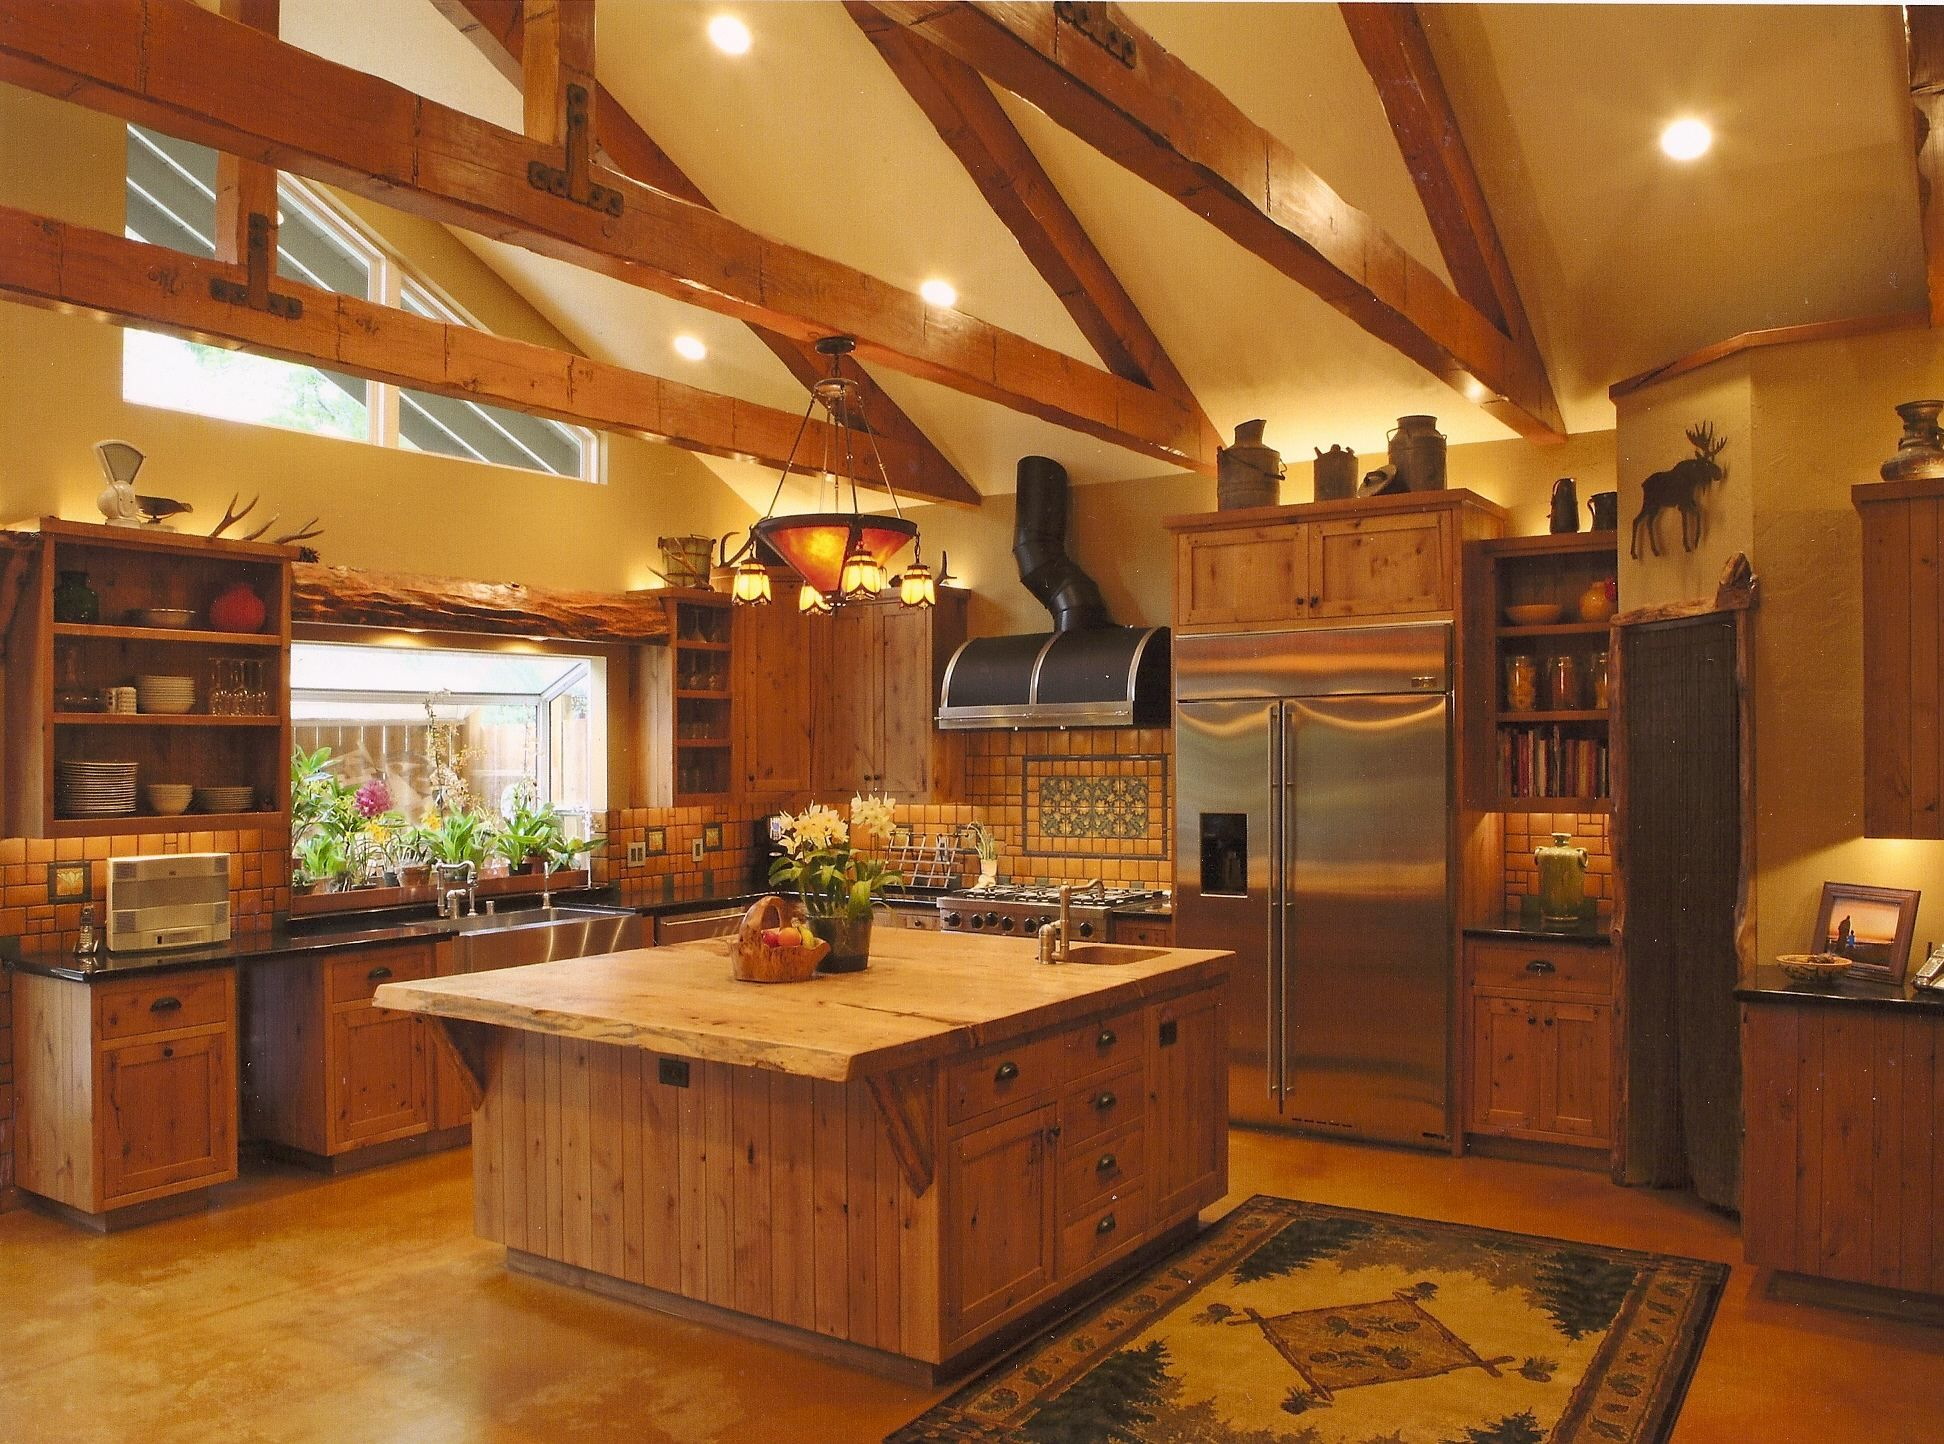 Pendant lights and stainless appliances highlight this log ...